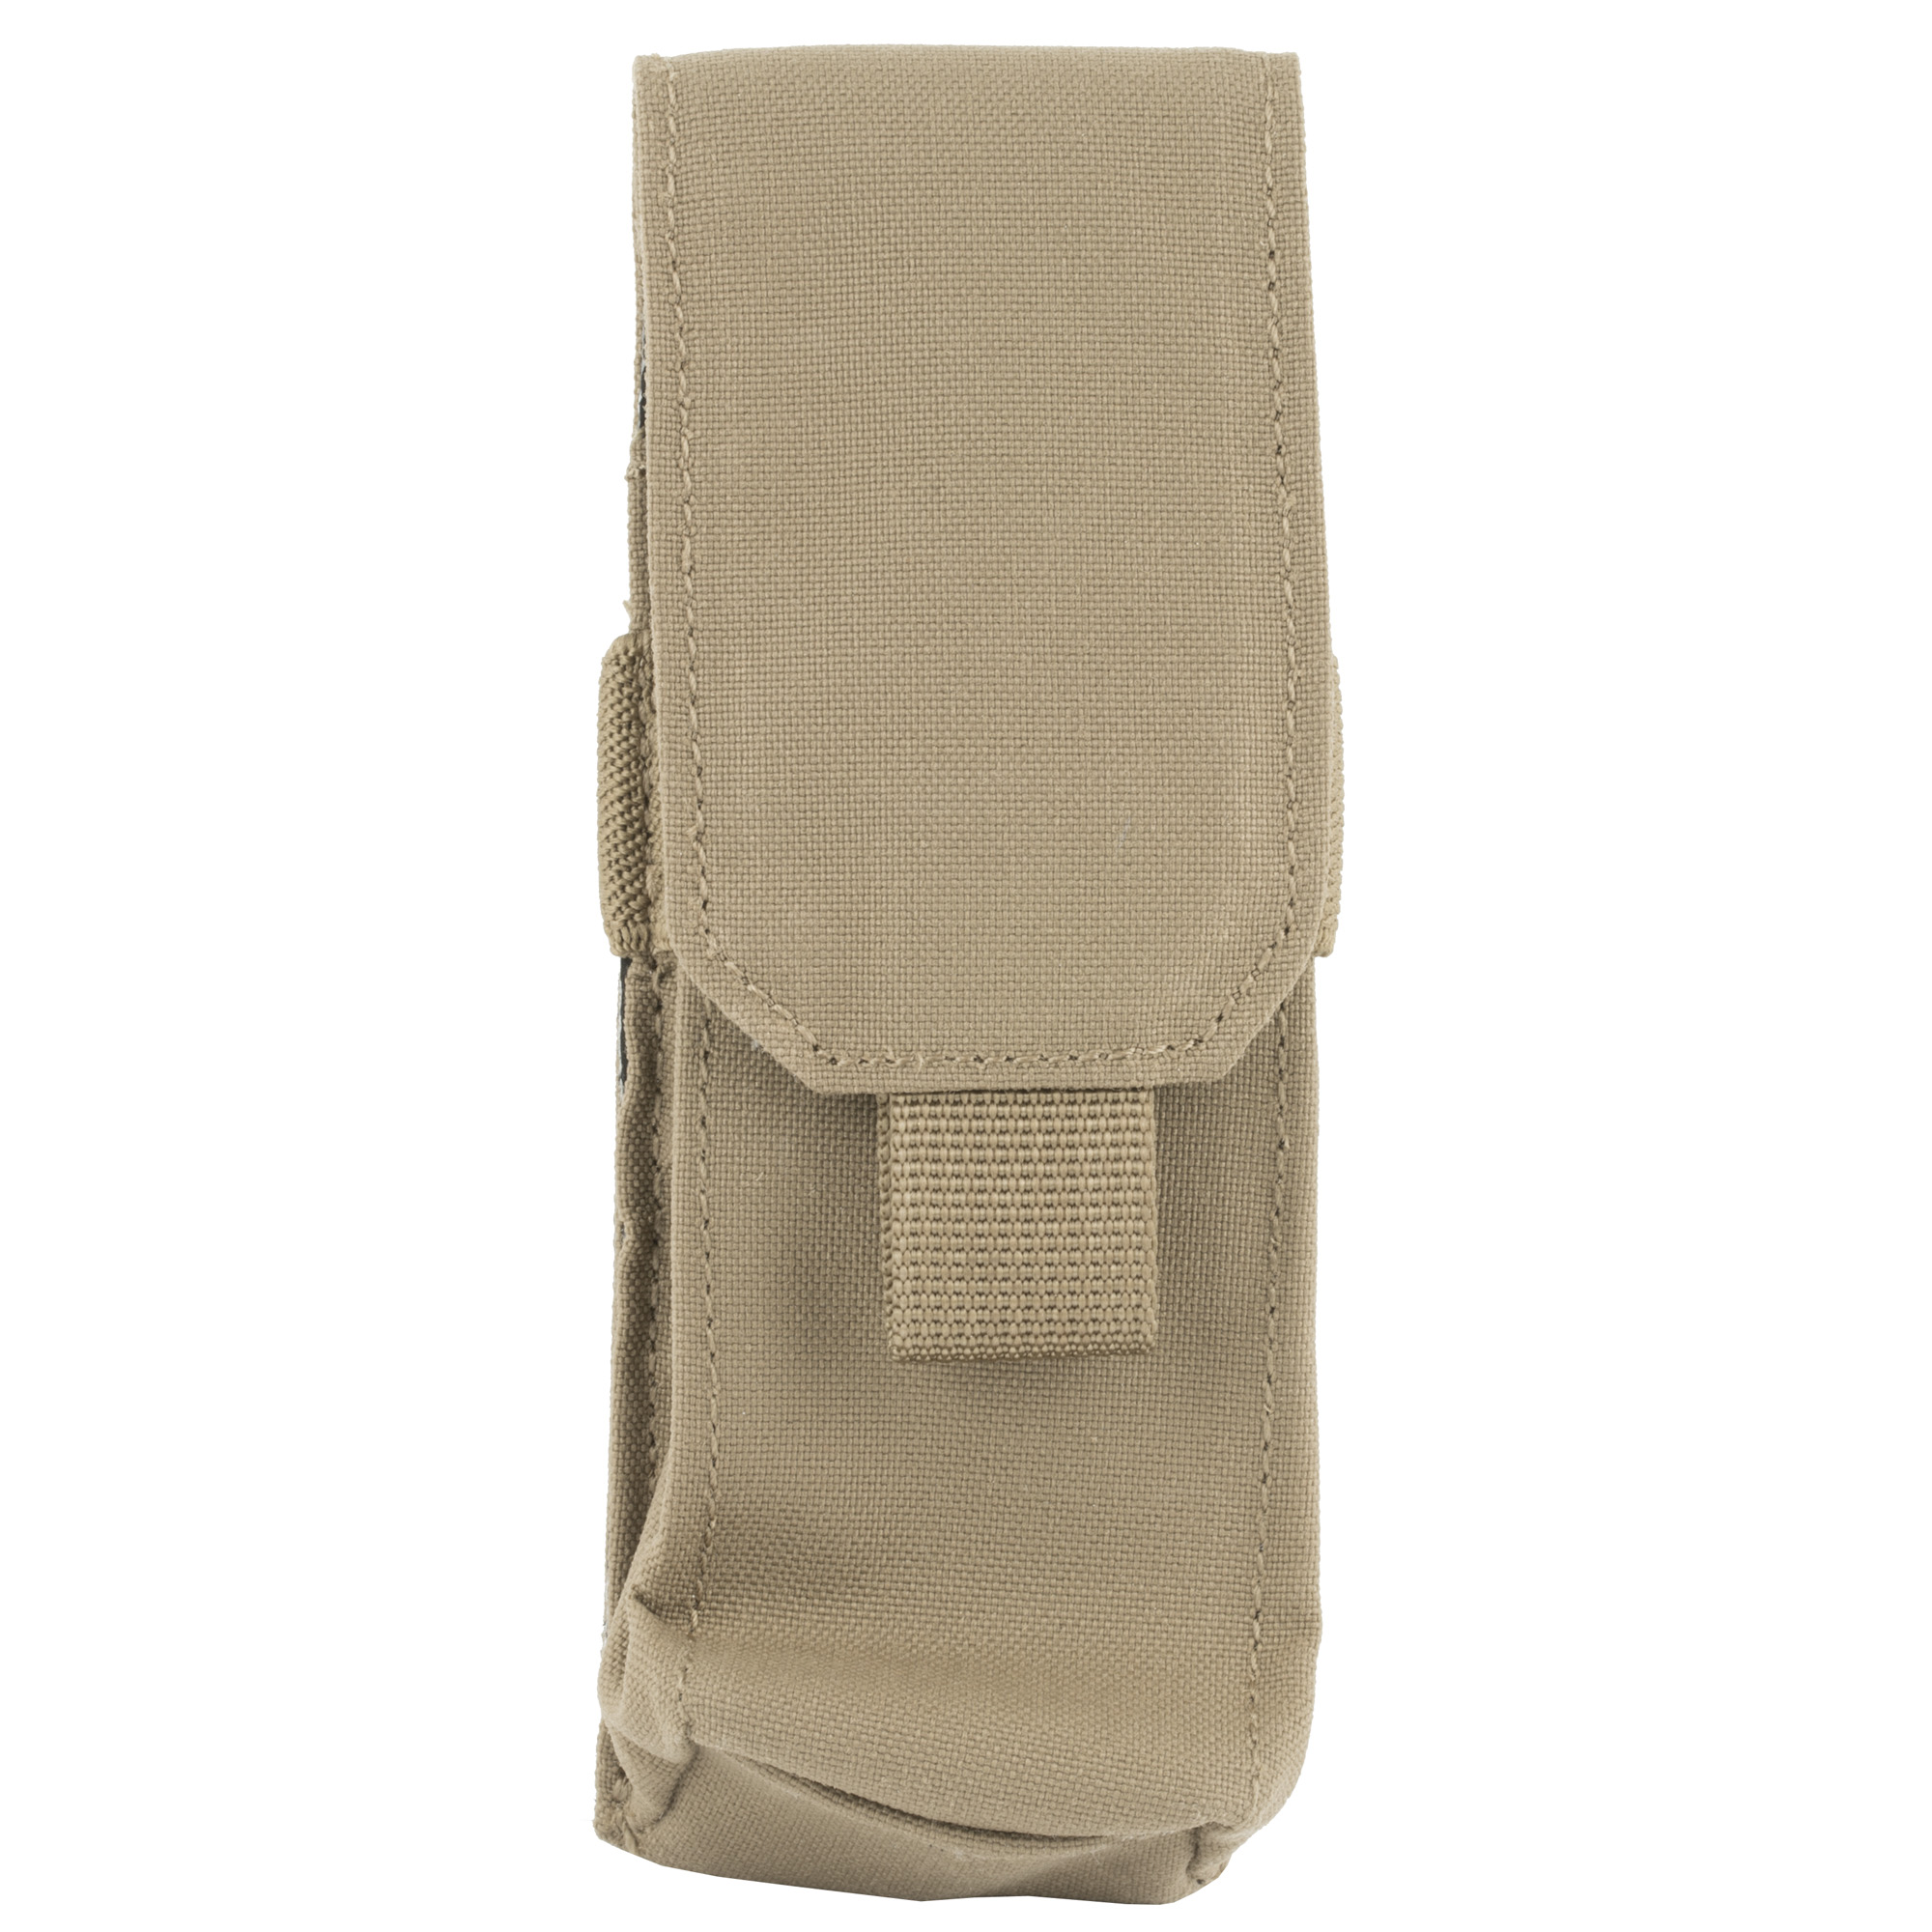 """Their Flashlight pouch is designed to securely hold most small handheld lights found on the market"""" to include the Surefire 6P"""" G2 and E Series"""" as well as tactical lights from Streamlight and Insight."""